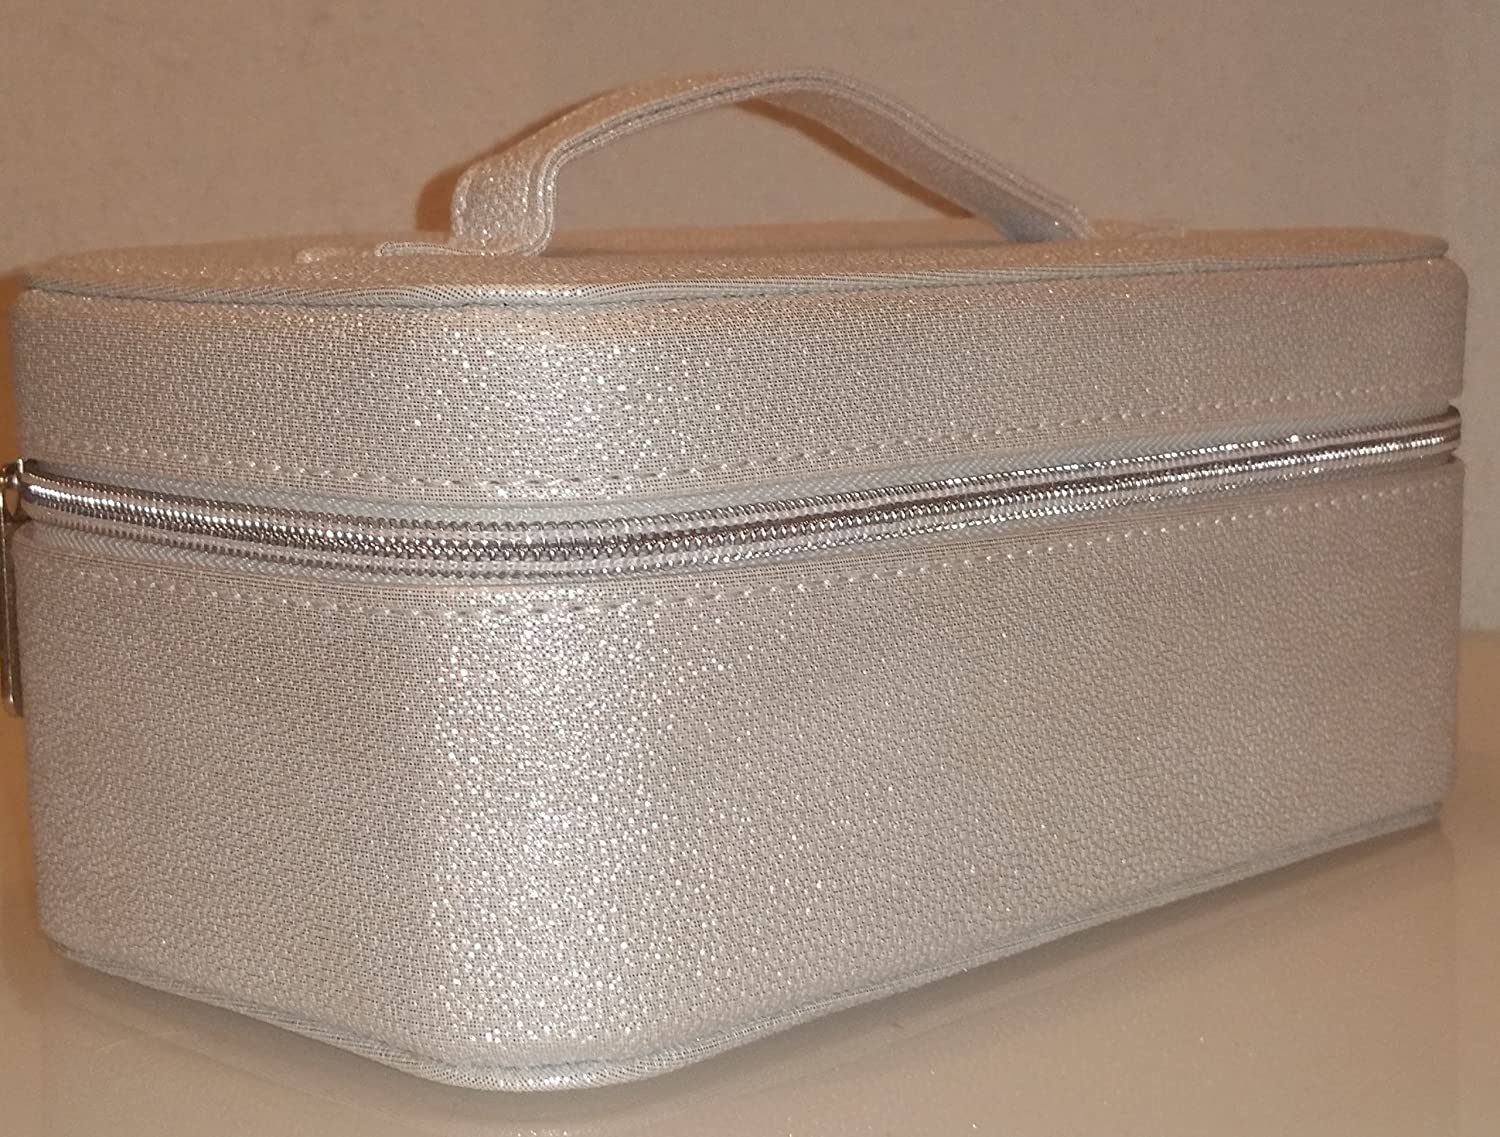 44a080321ea5 Amazon.com : Bareminerals Large Cosmetic Travel Case Bag Shiny White ...